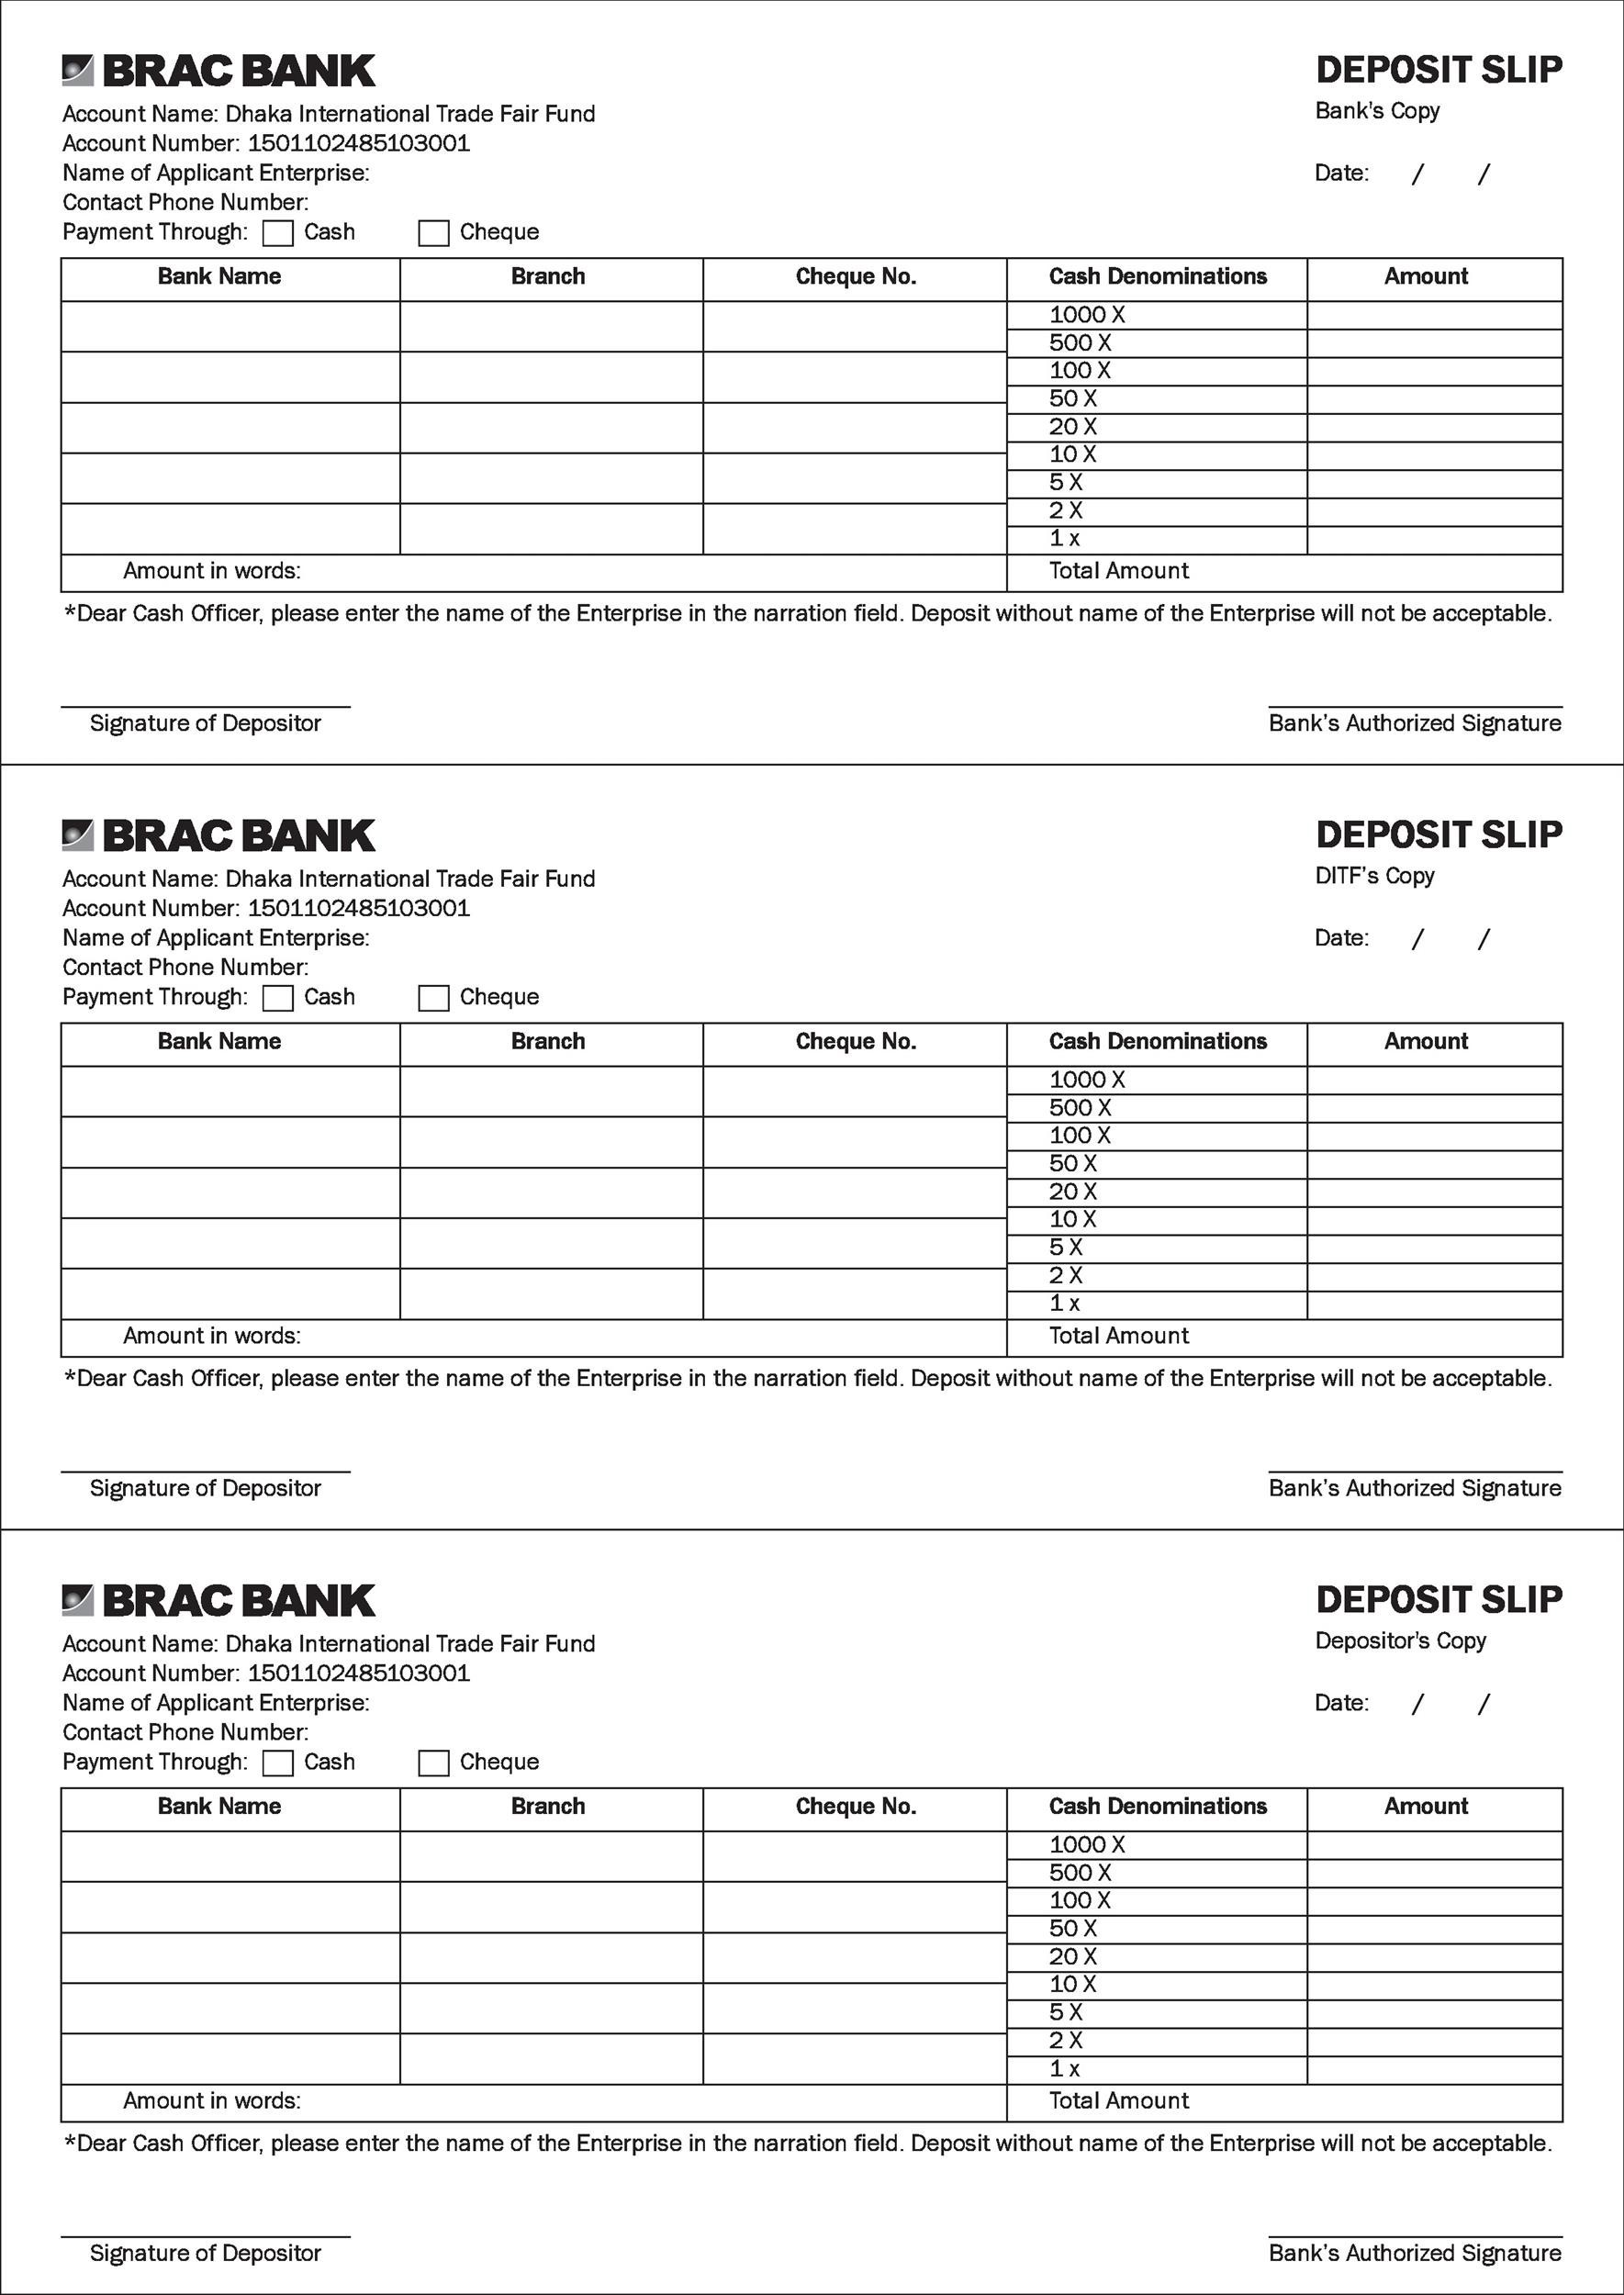 graphic regarding Us Bank Deposit Slip Printable titled 37 Financial institution Deposit Slip Templates Illustrations ᐅ Template Lab